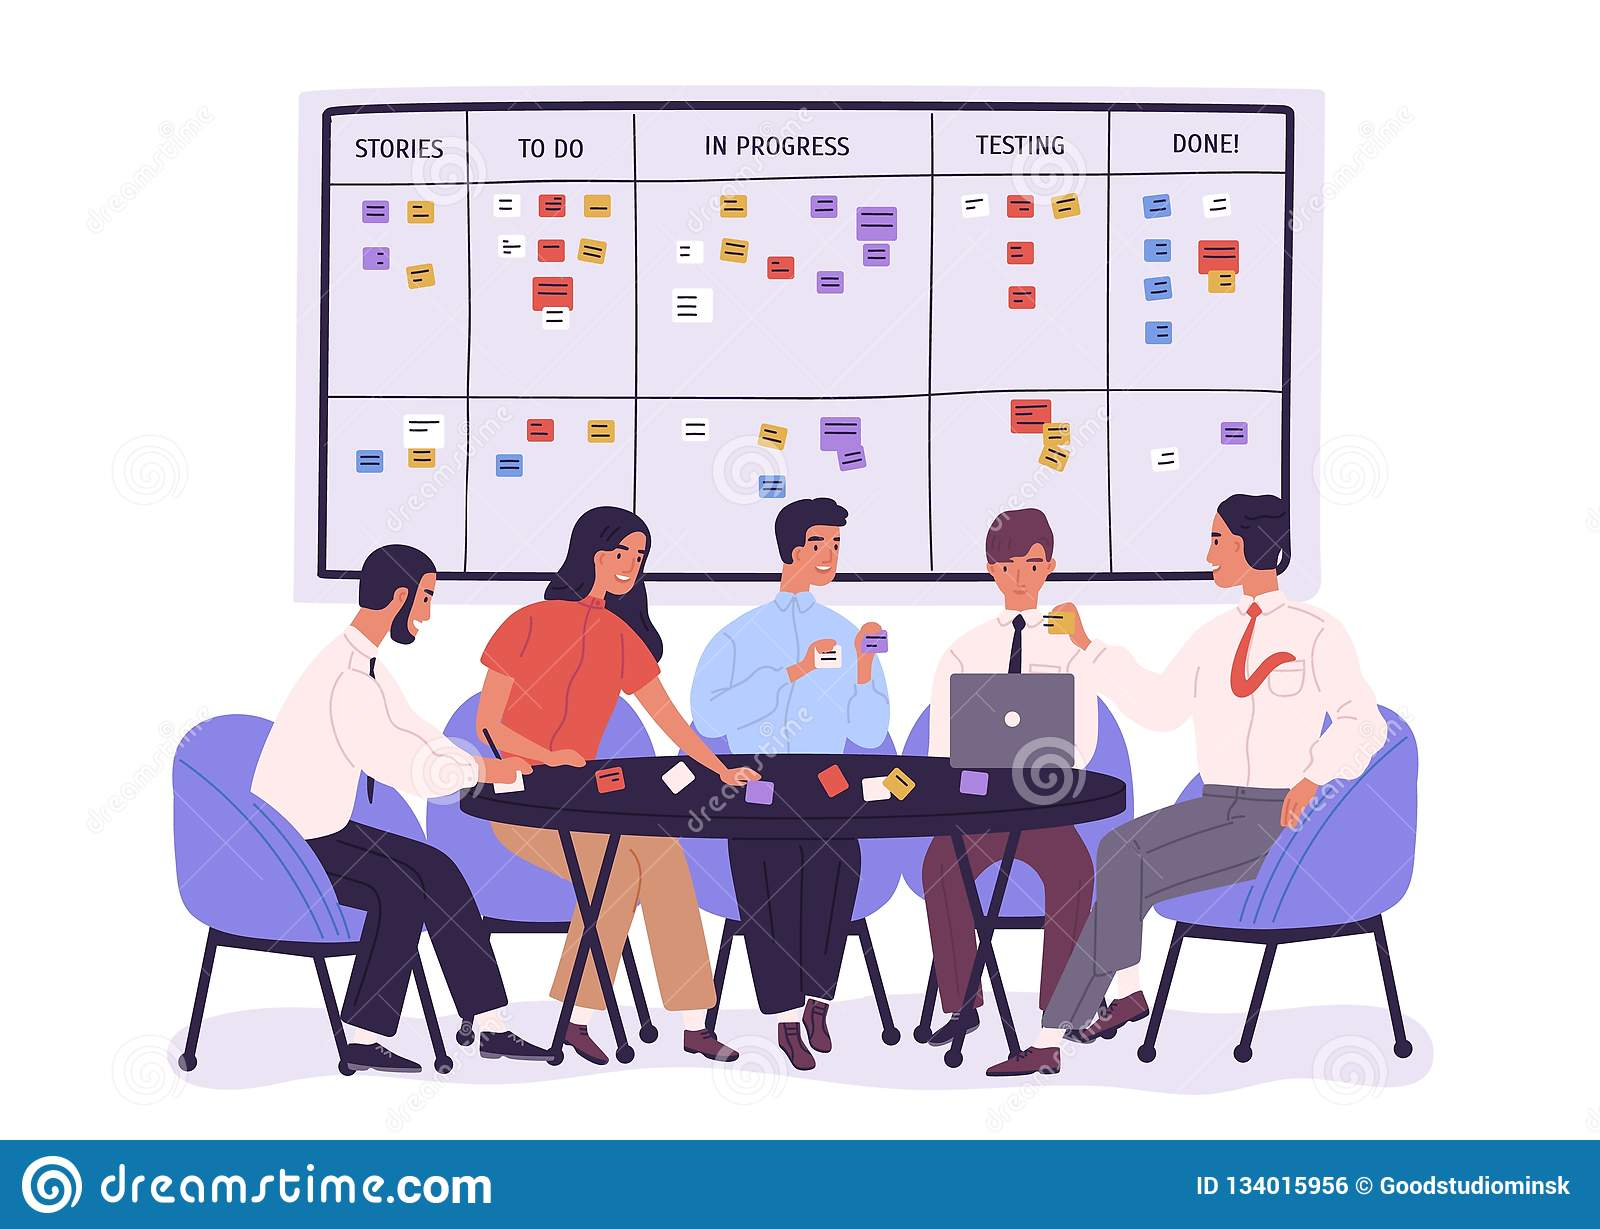 Group of people or office workers sitting around table and discussing work issues against SCRUM task board with sticky